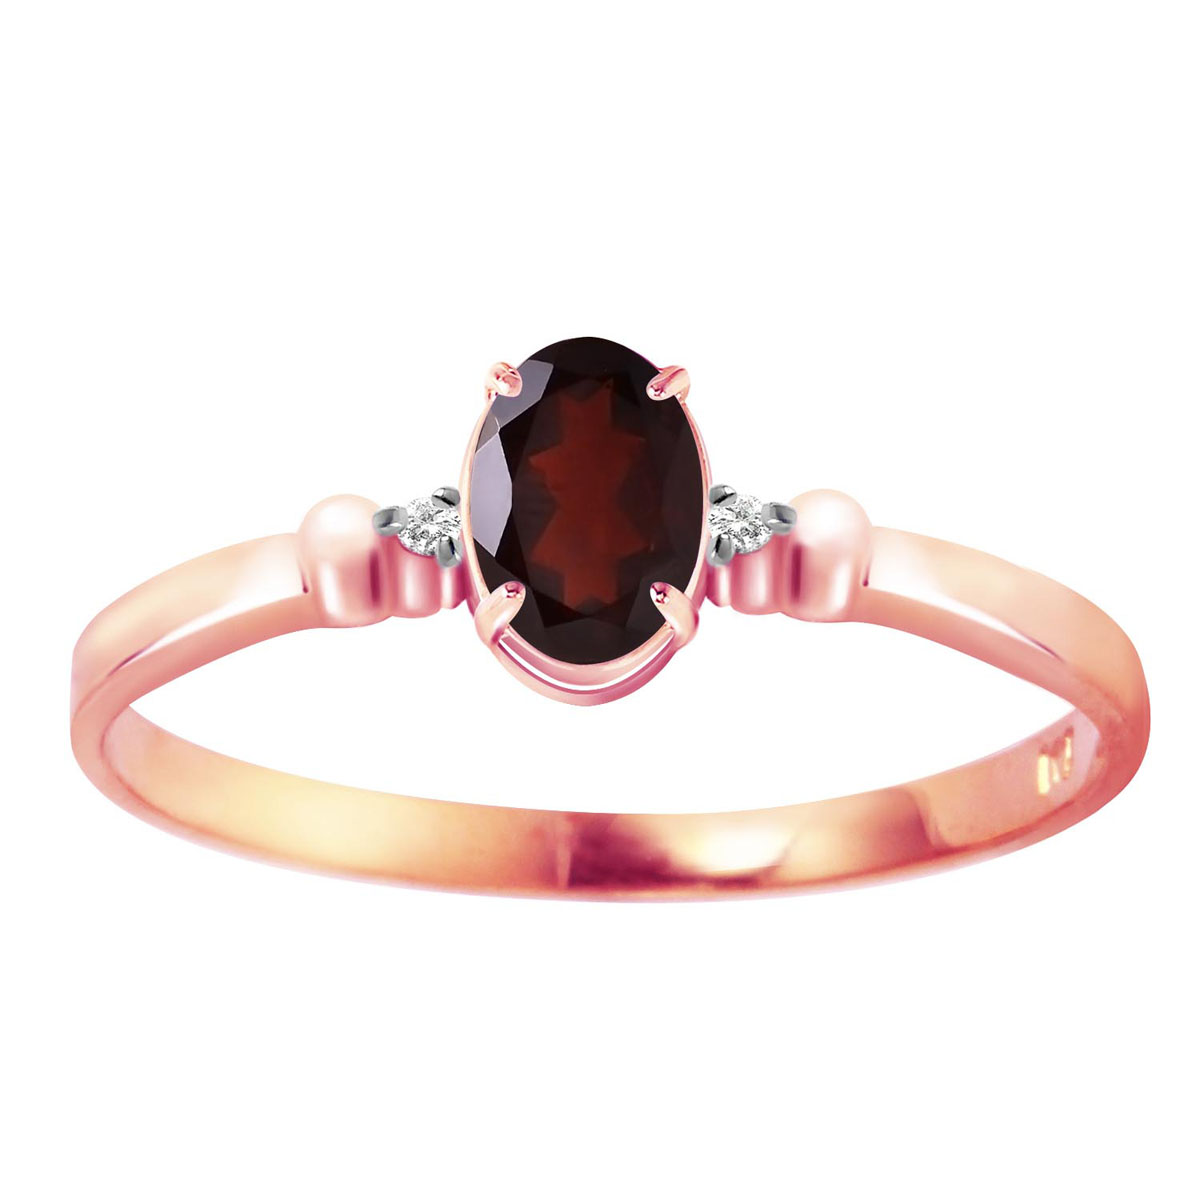 Garnet & Diamond Allure Ring in 18ct Rose Gold